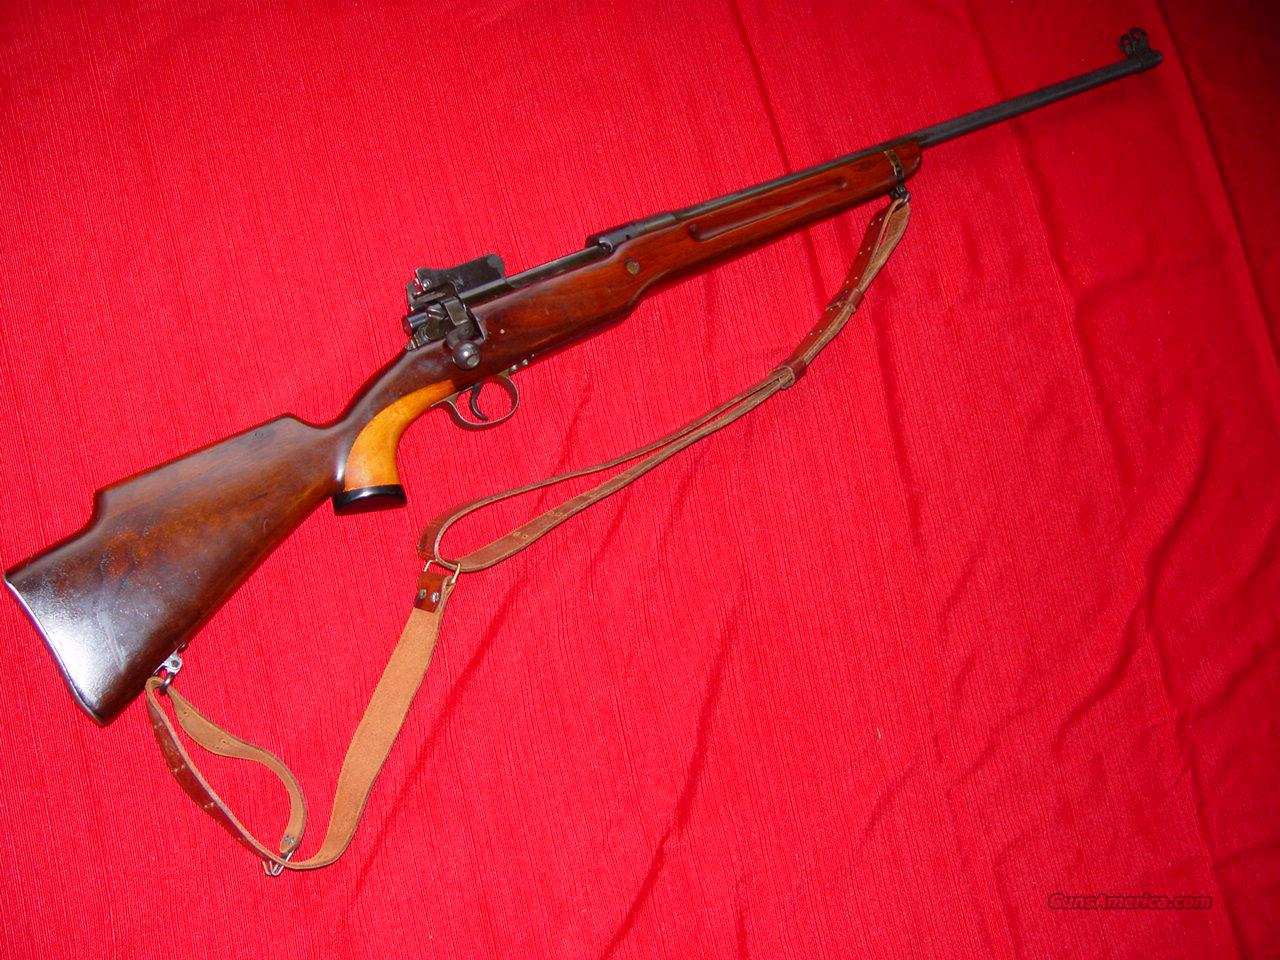 U.S. Model 1917 Remington Enfield Rifle, .30-06 Sporterized   Guns > Rifles > Military Misc. Rifles US > 1903 Springfield/Variants